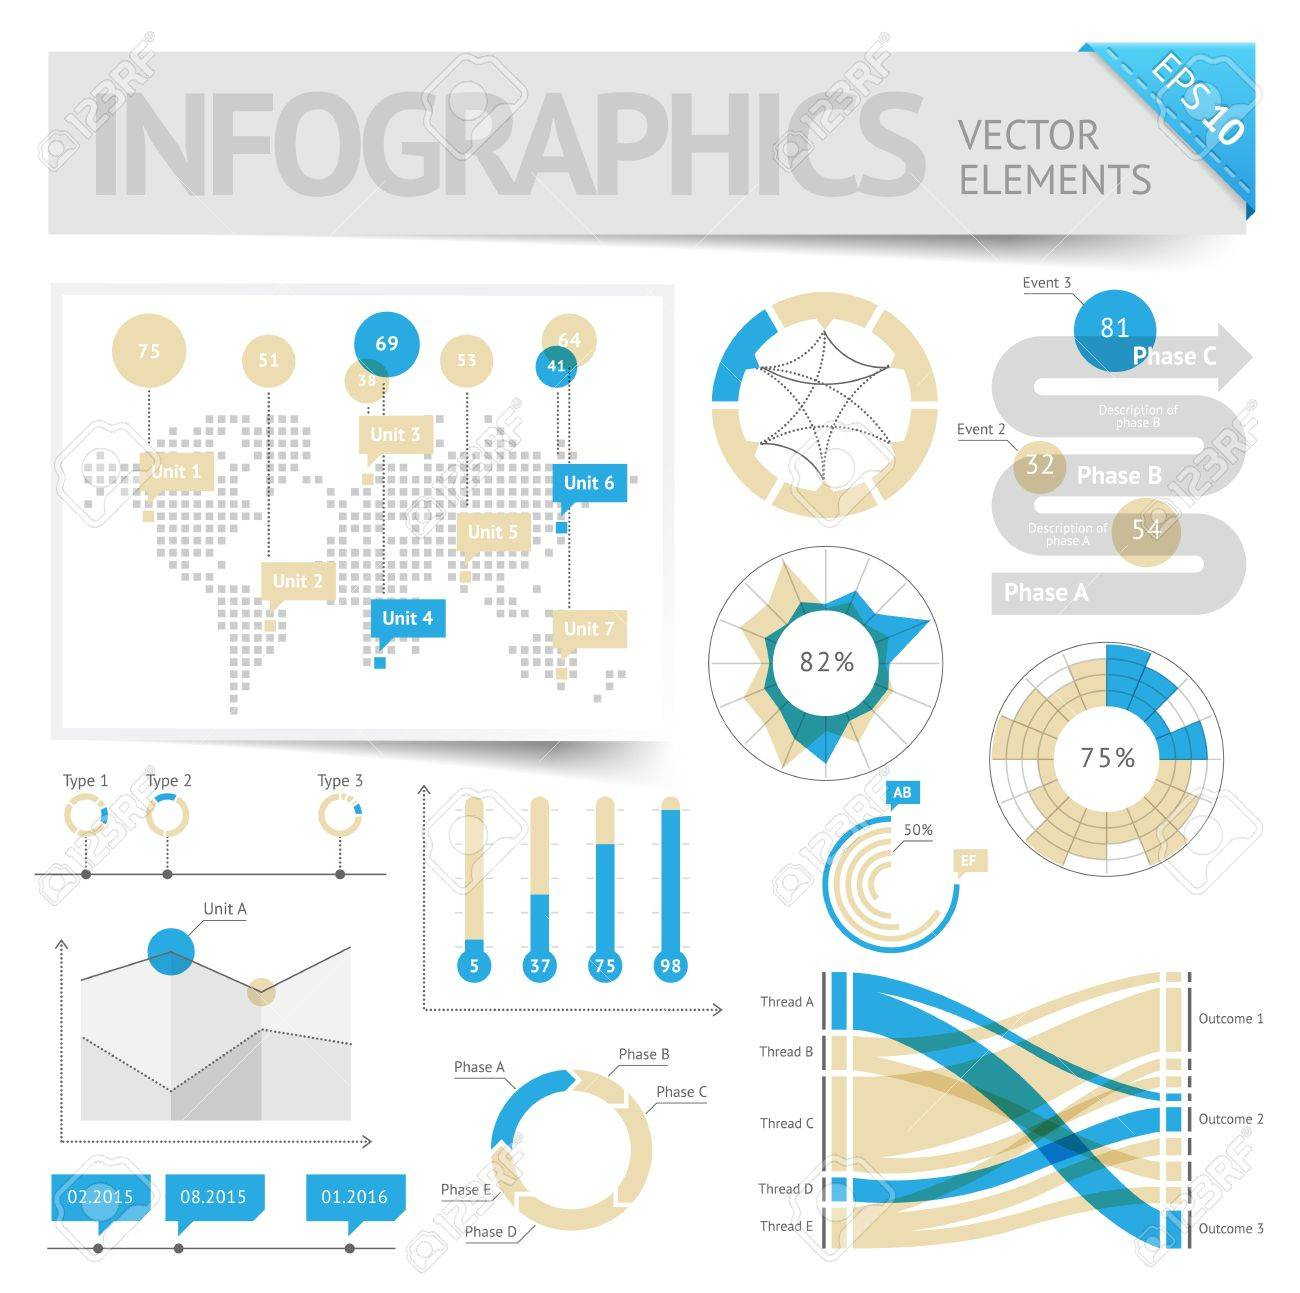 Infographic design elements Vector saved as EPS-10, file contains objects with transparency shadows etc - 19601837